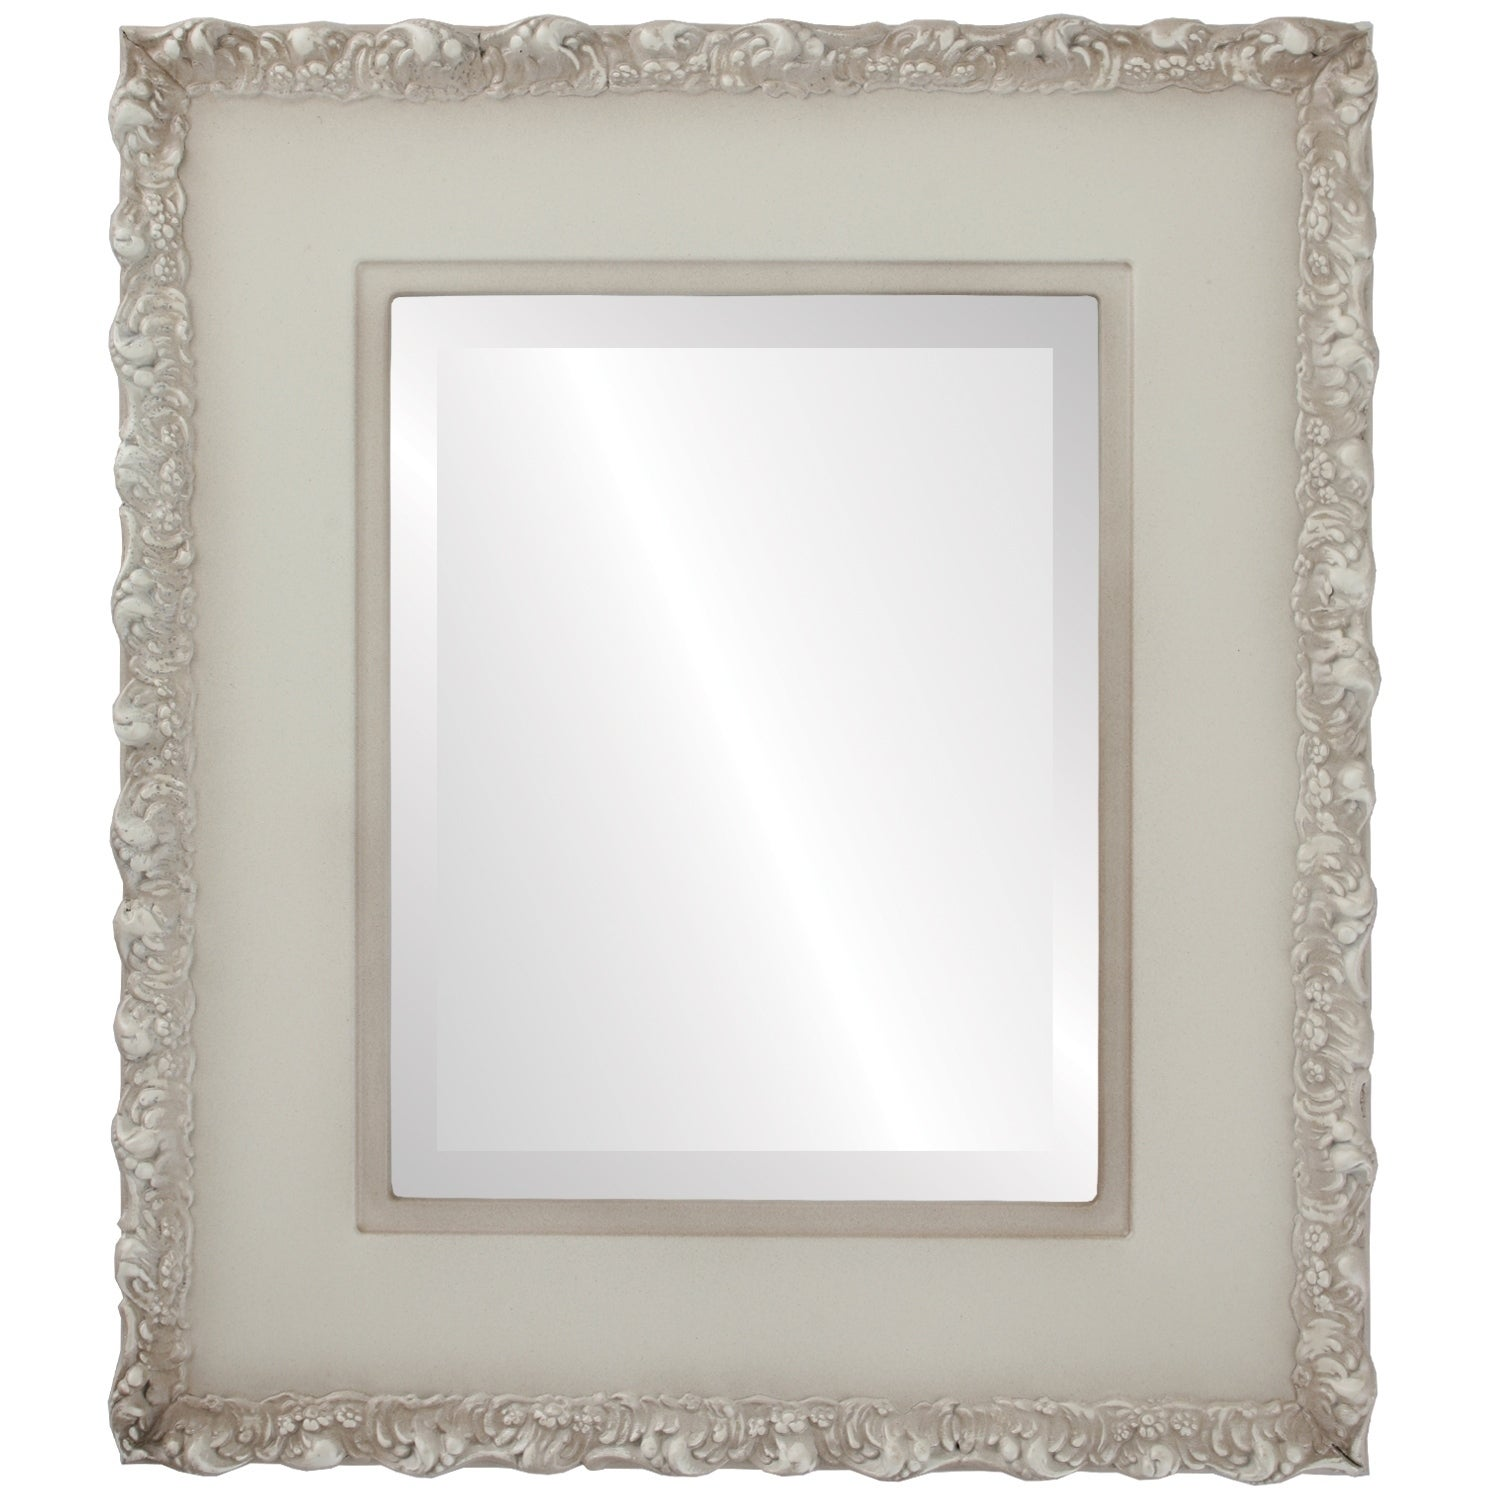 Williamsburg Framed Rectangle Mirror in Taupe (19x23 - Medium (15-32 high))